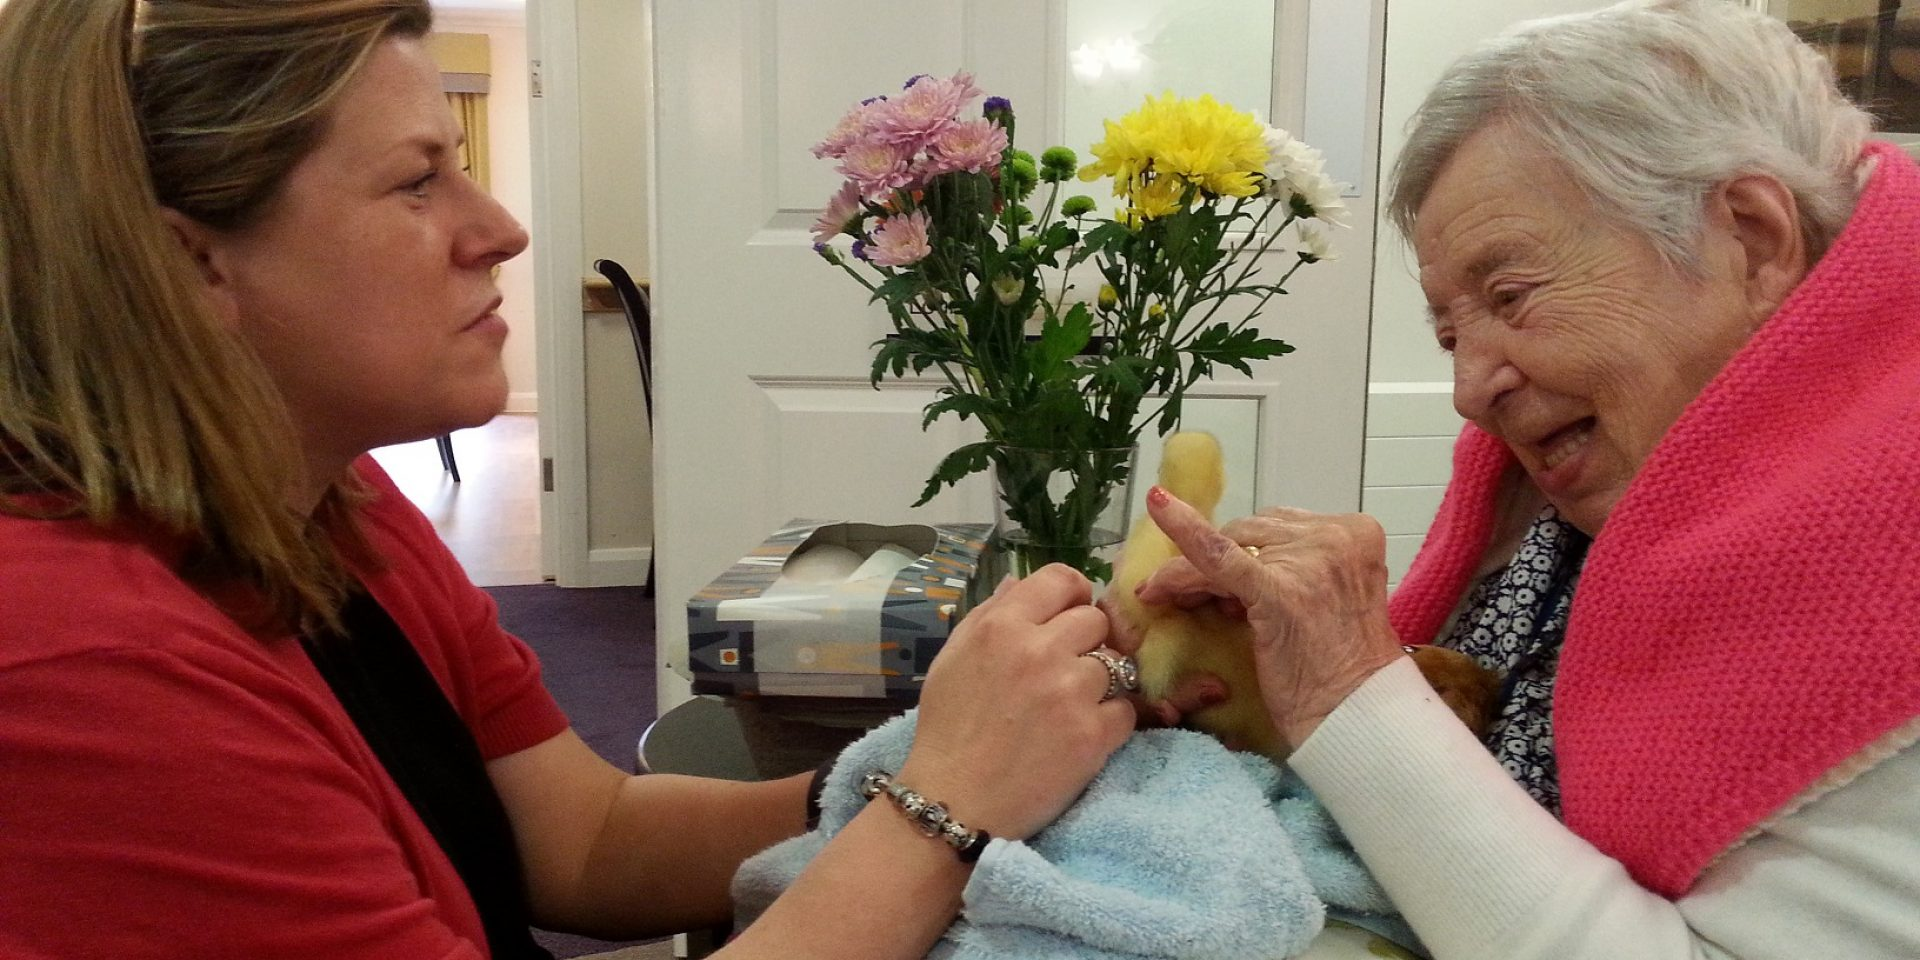 Ducklings at De Lucy House Care Home in Diss